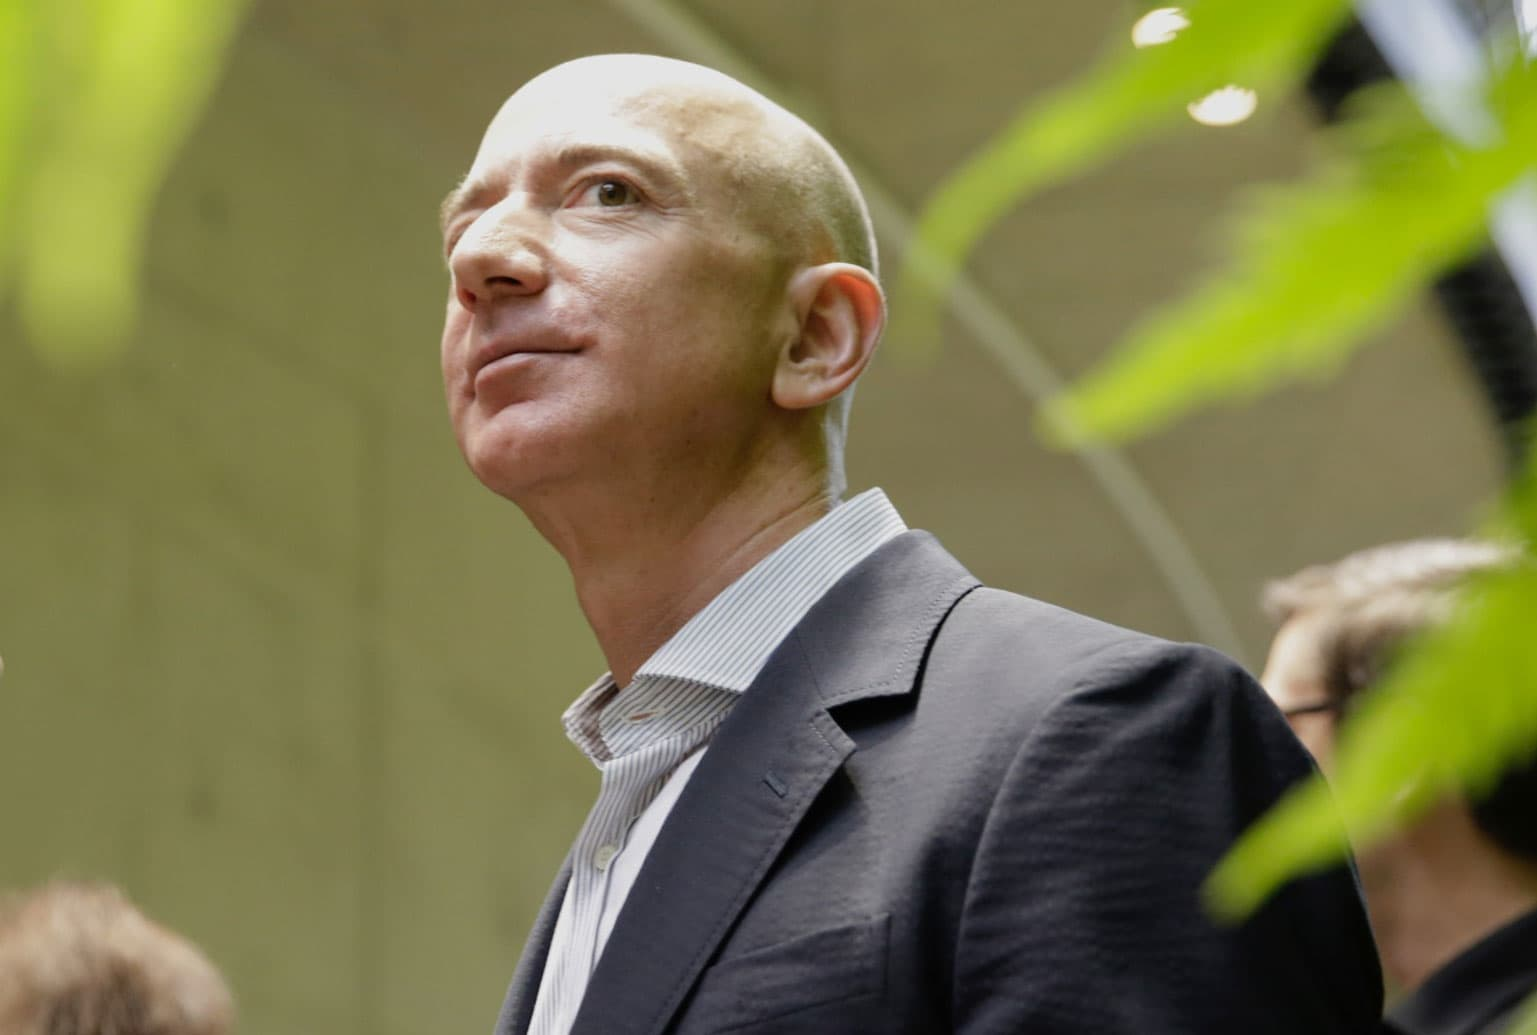 Jeff Bezos built a $1.6 trillion company from nothing: Here's the legacy he leaves behind